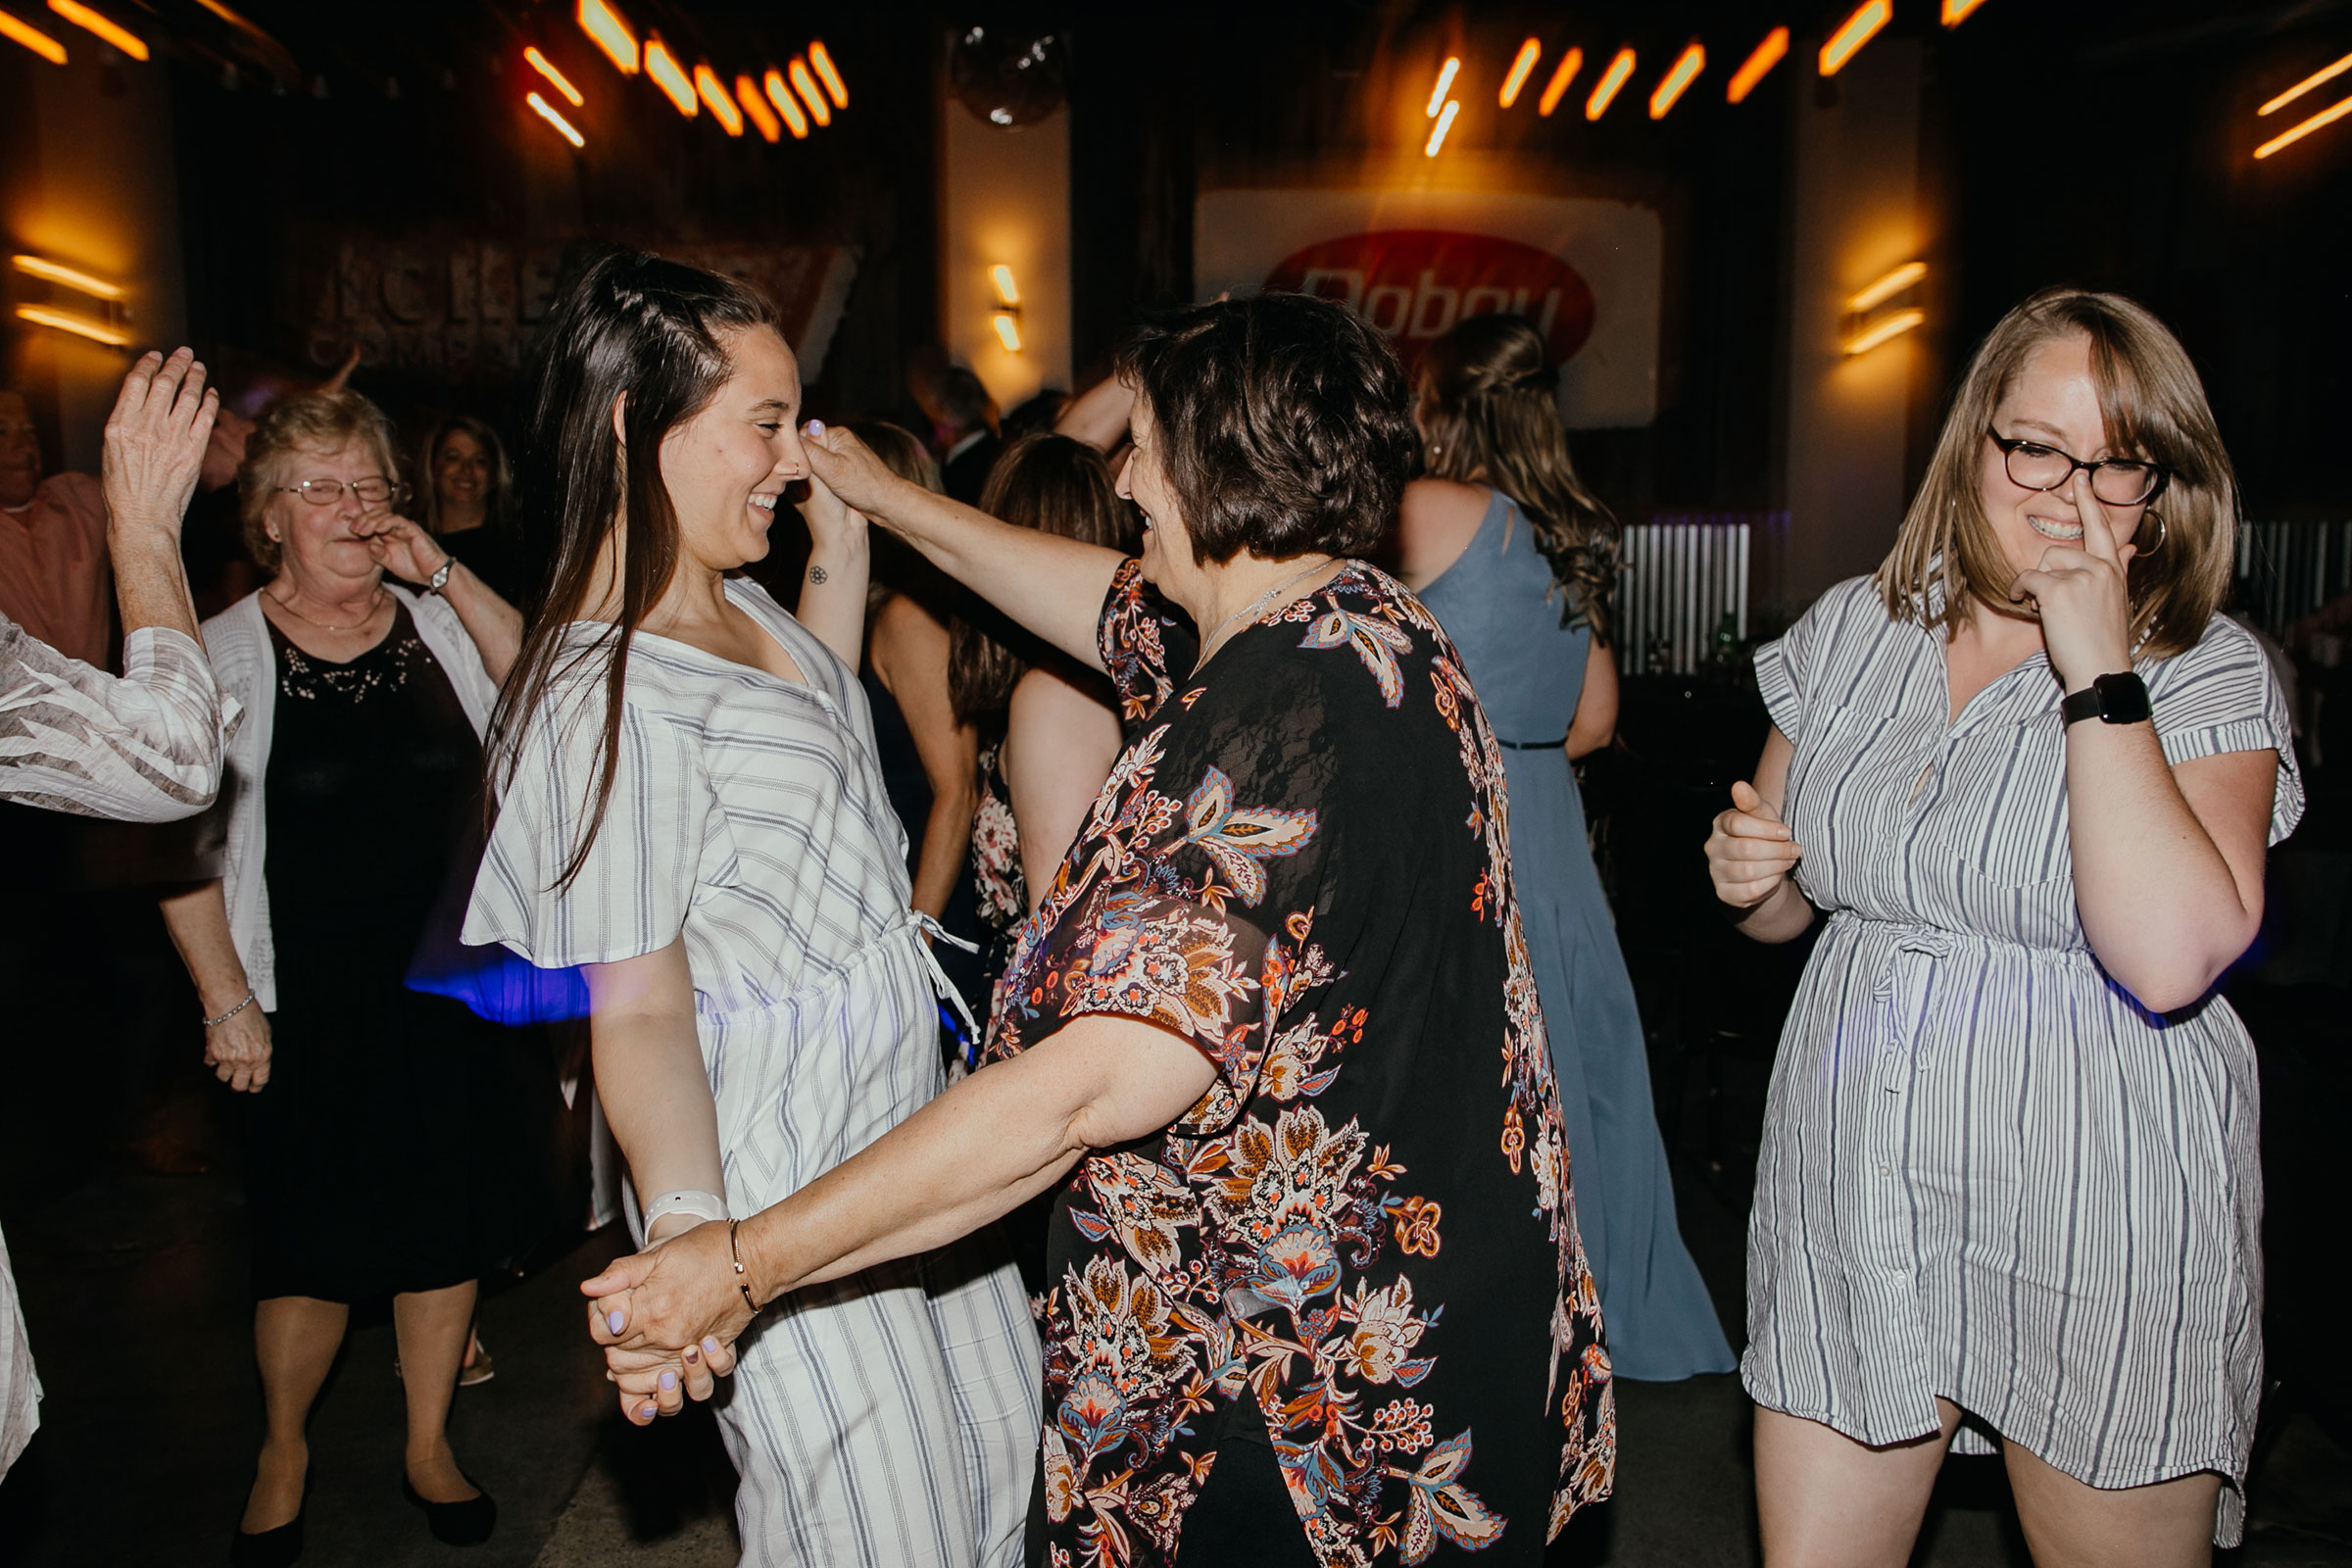 guest-dancing-with-grandma-decades-event-center-building-desmoines-iowa-raelyn-ramey-photography..jpg